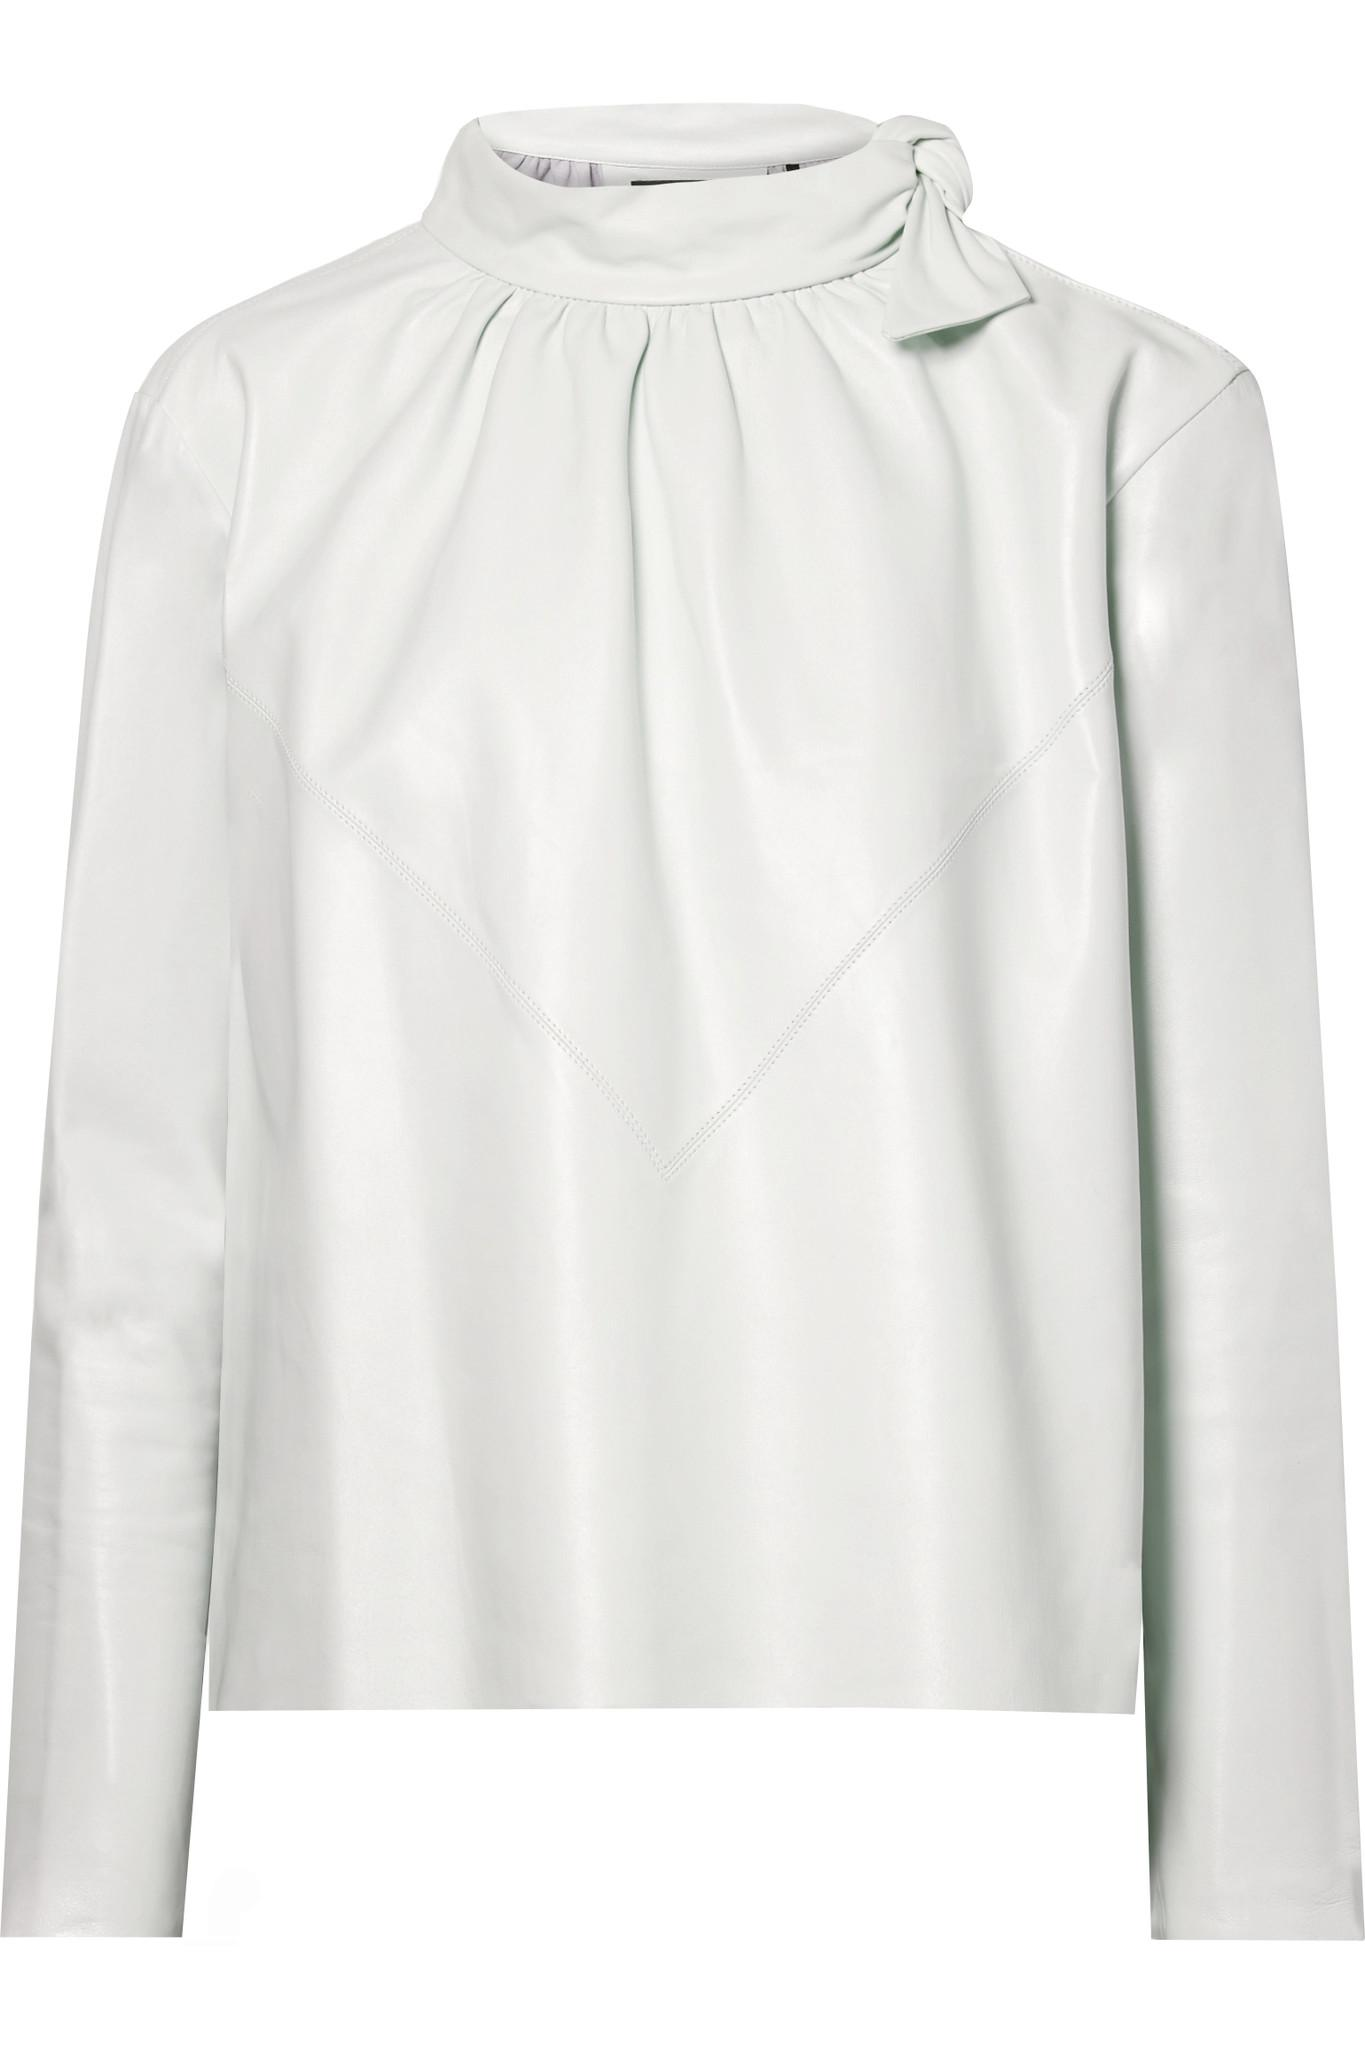 11dbb64091776e Lyst - Isabel Marant Chay Gathered Leather Blouse in White